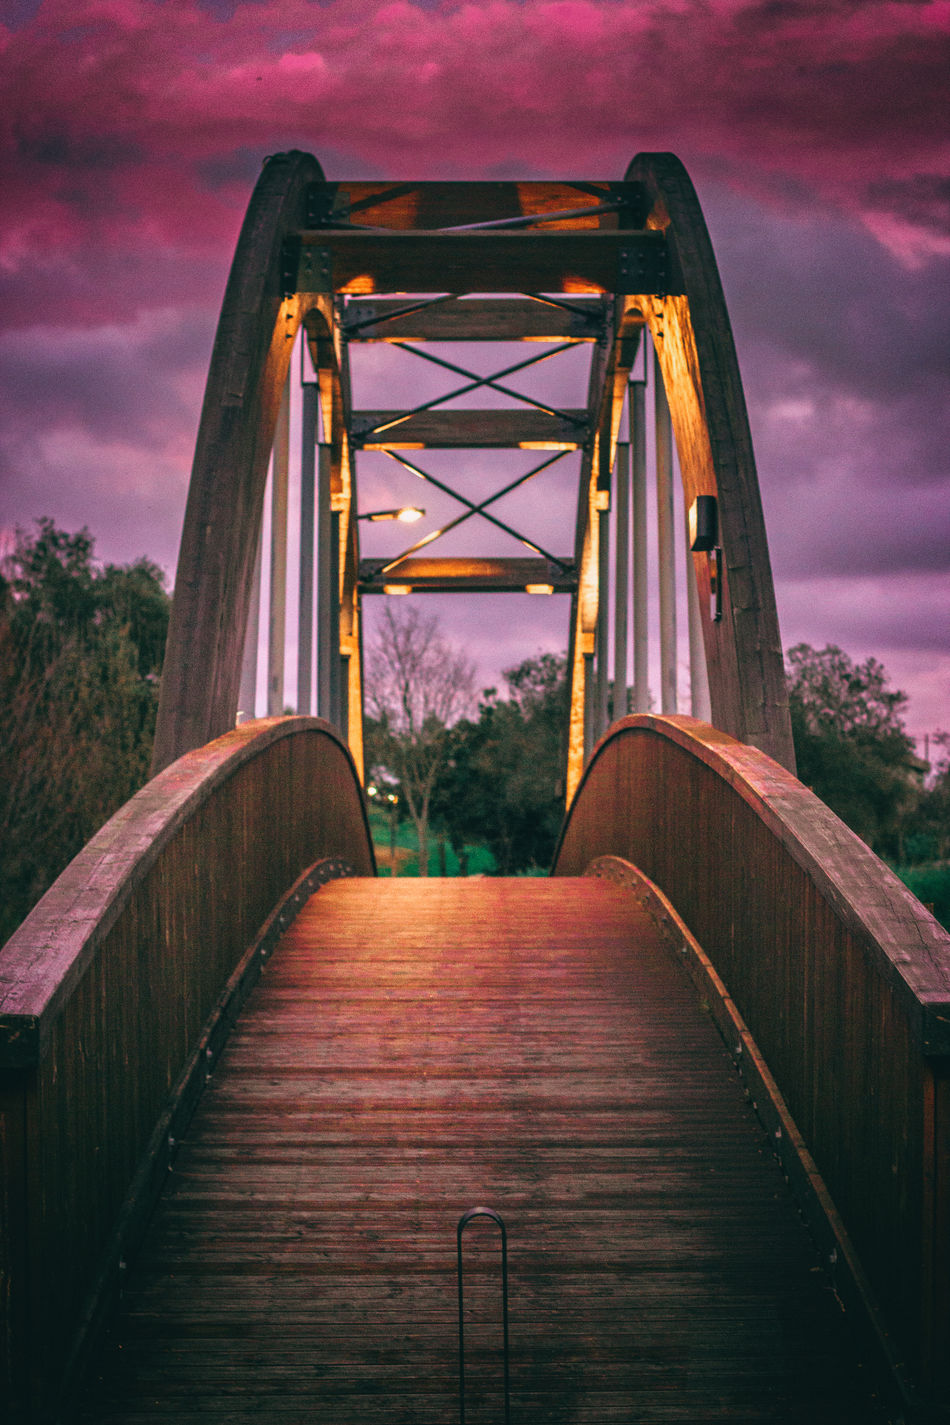 Sunset No People Outdoors Tree Architecture Sky Bridge - Man Made Structure Day EyeEmNewHere